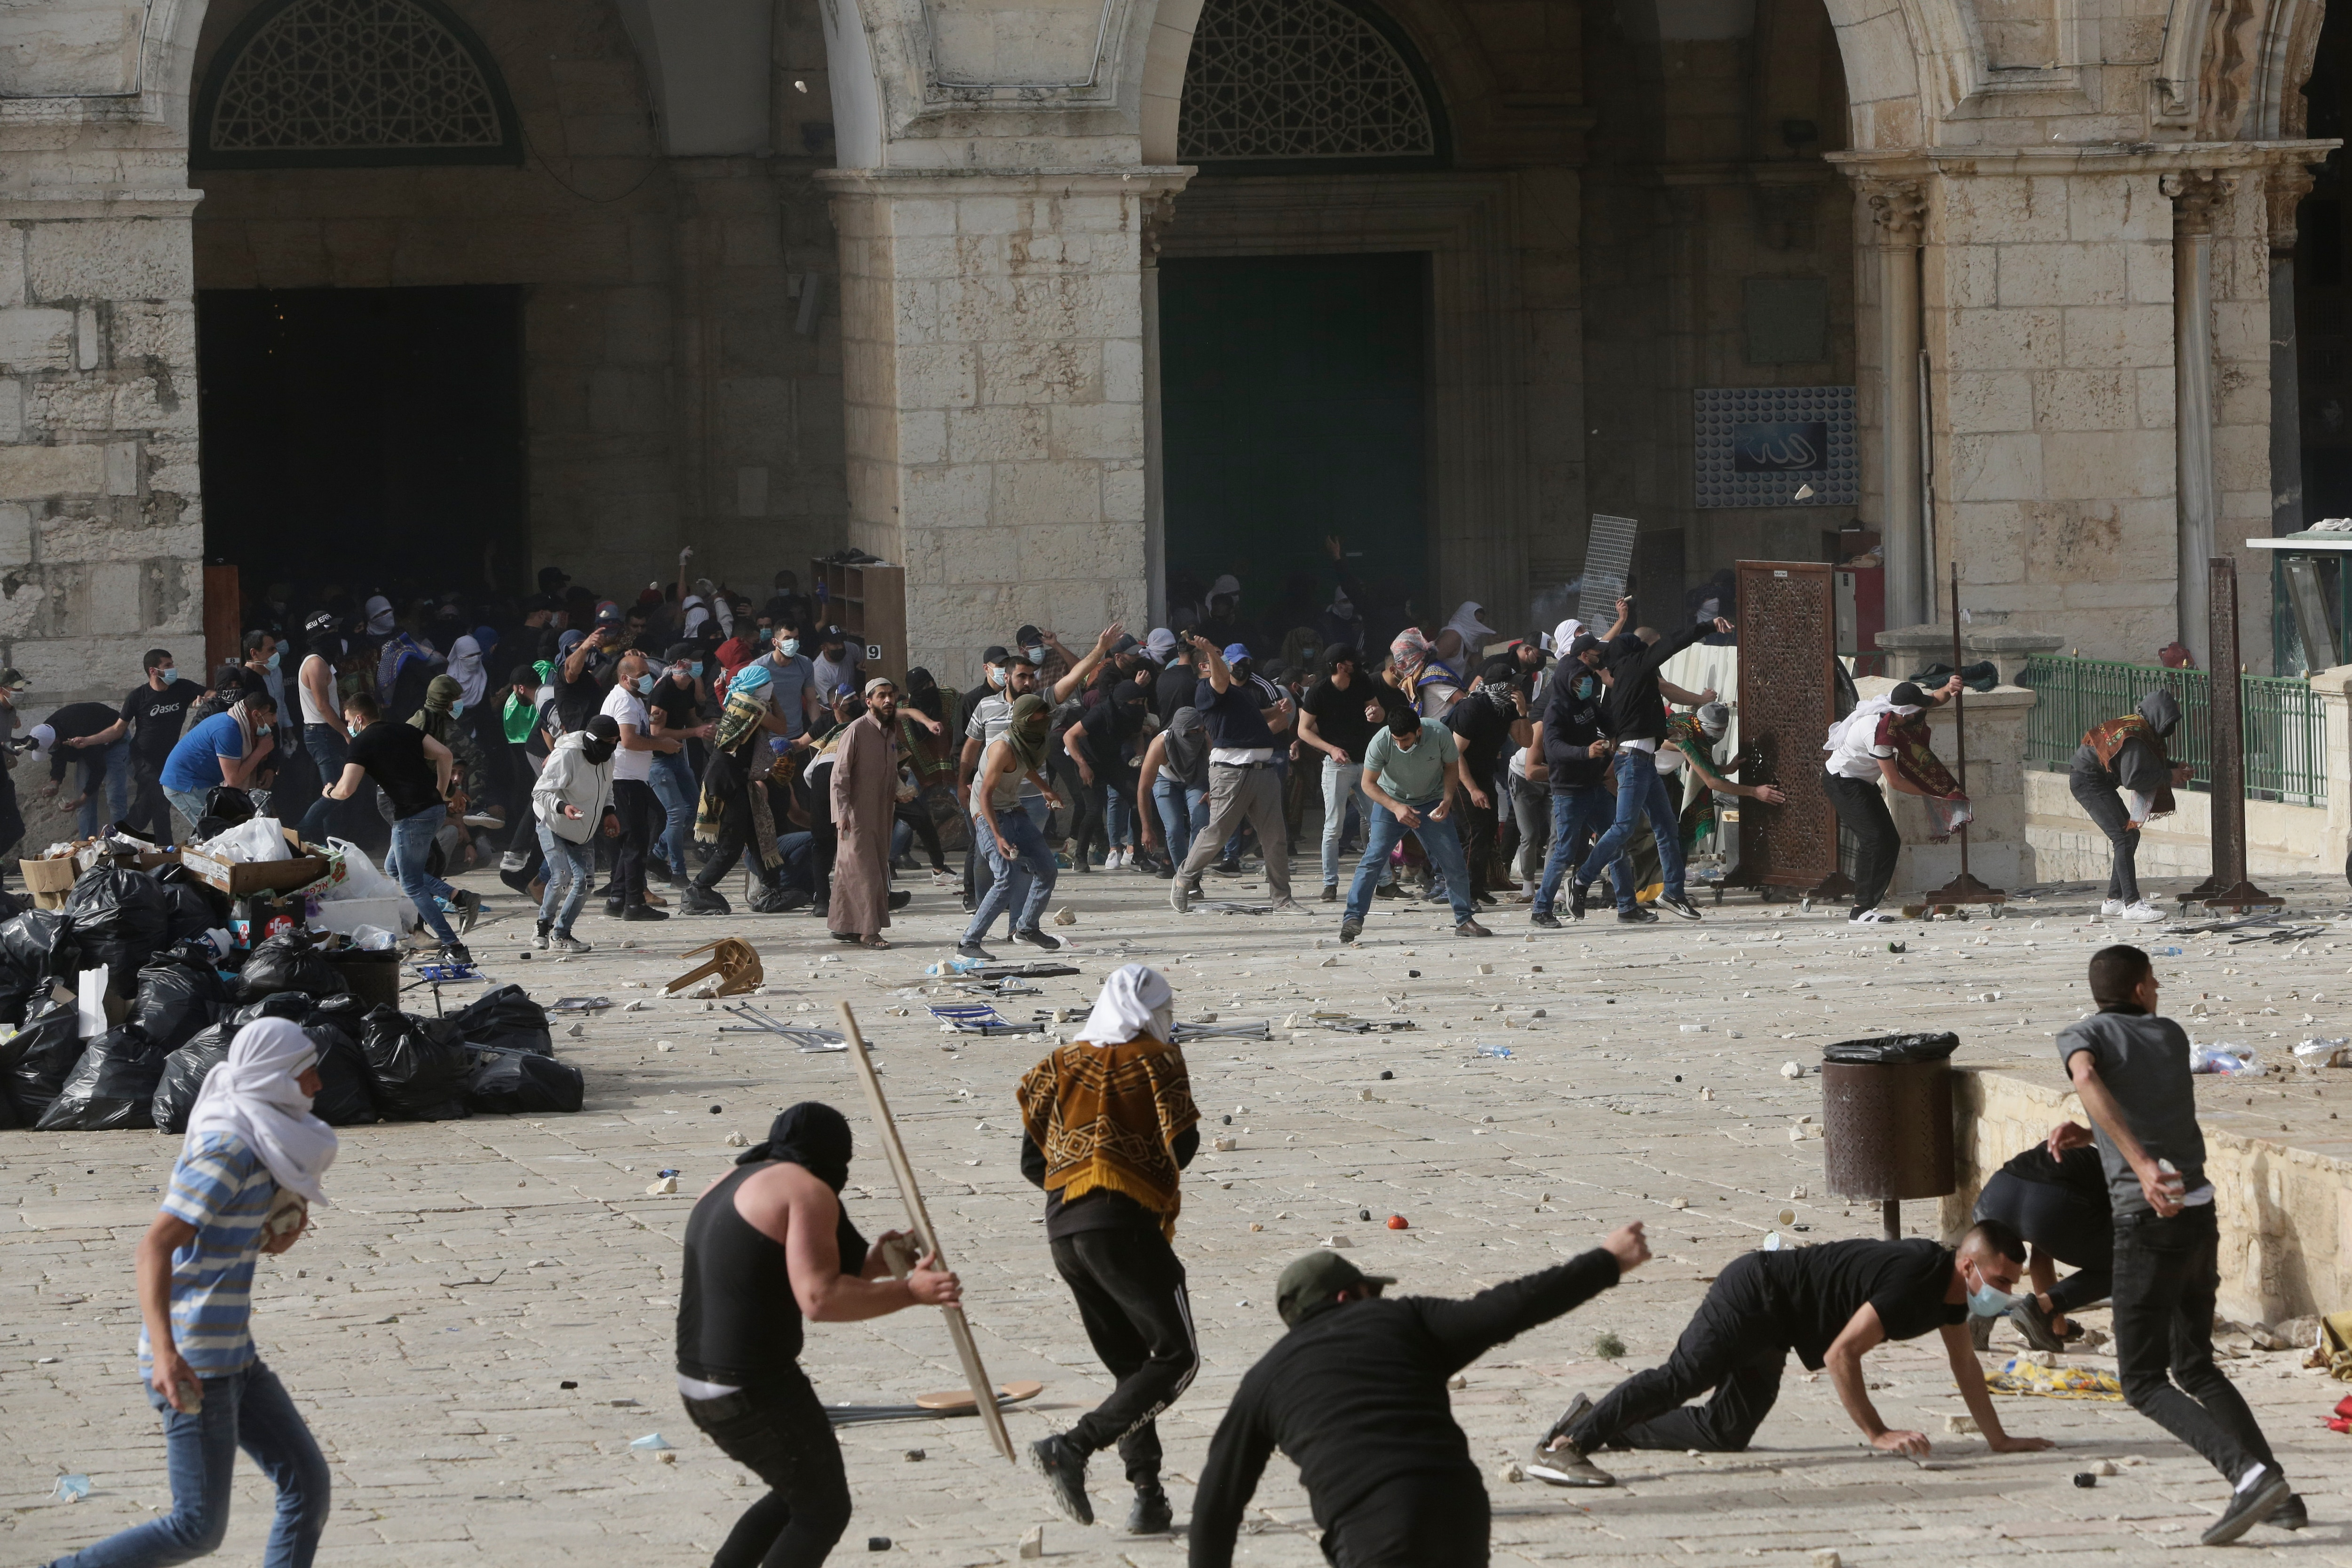 Palestinians clash with Israeli security forces at the Al Aqsa Mosque compound in Jerusalem's Old City Monday, 10 May, 2021.